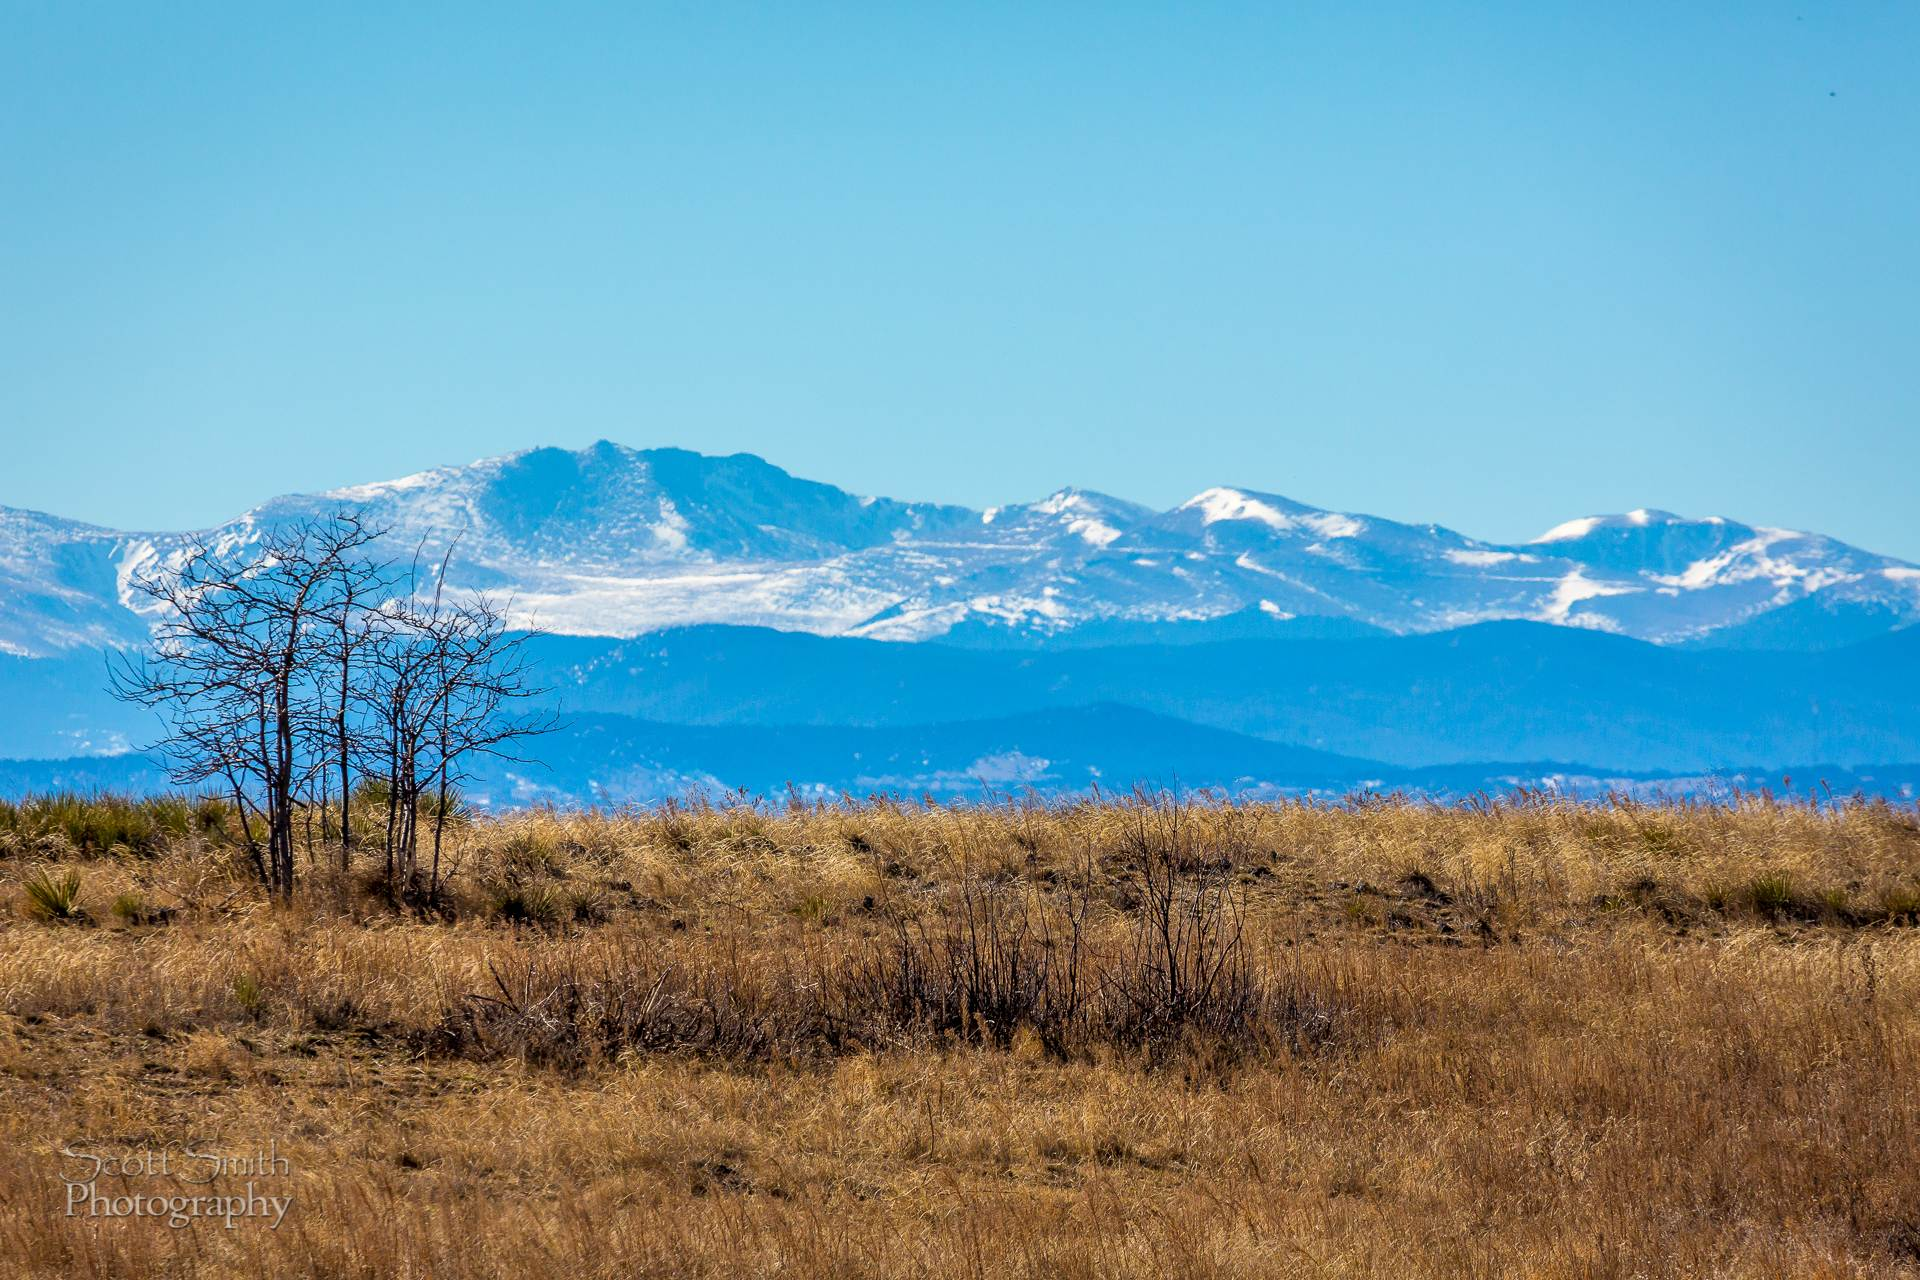 Front Range - The front range from the Rocky Mountain Arsenal Wildlife Refuge. by D Scott Smith